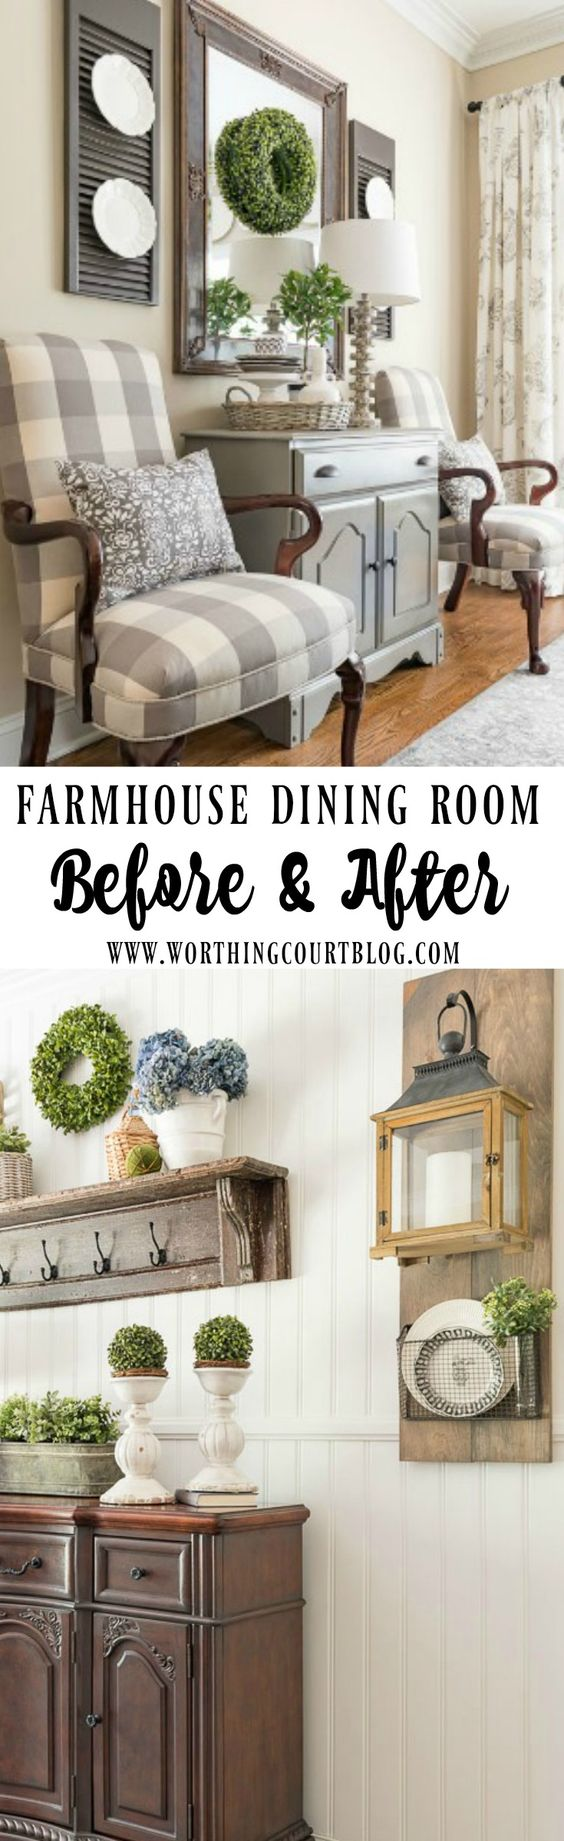 Farmhouse dining room makeover reveal before and after for Dining room makeover